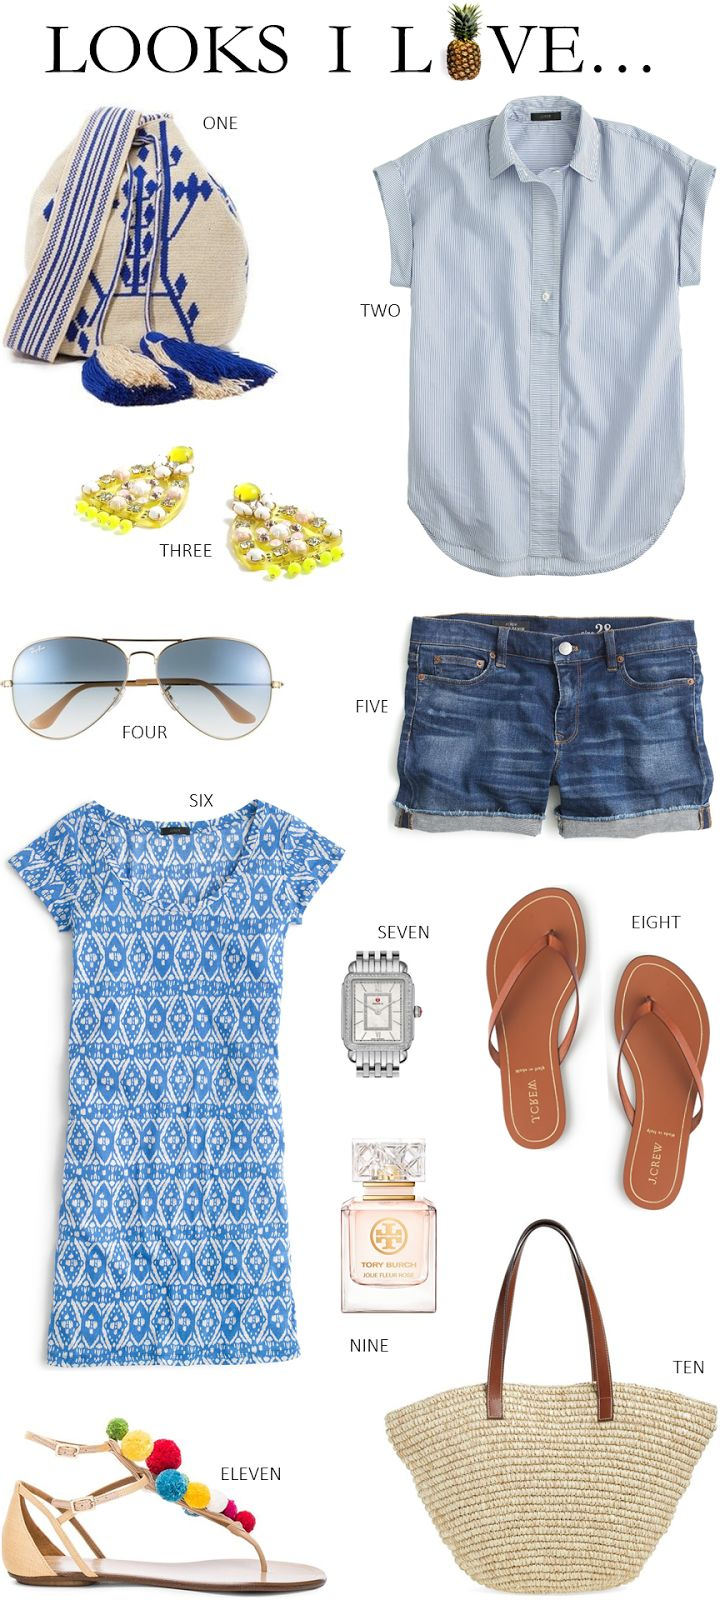 135badbcd1 LOOKS I LOVE // SUMMER CASUAL RESORT WEAR | My Style | Resort wear, Resort  casual, Summer holiday outfits